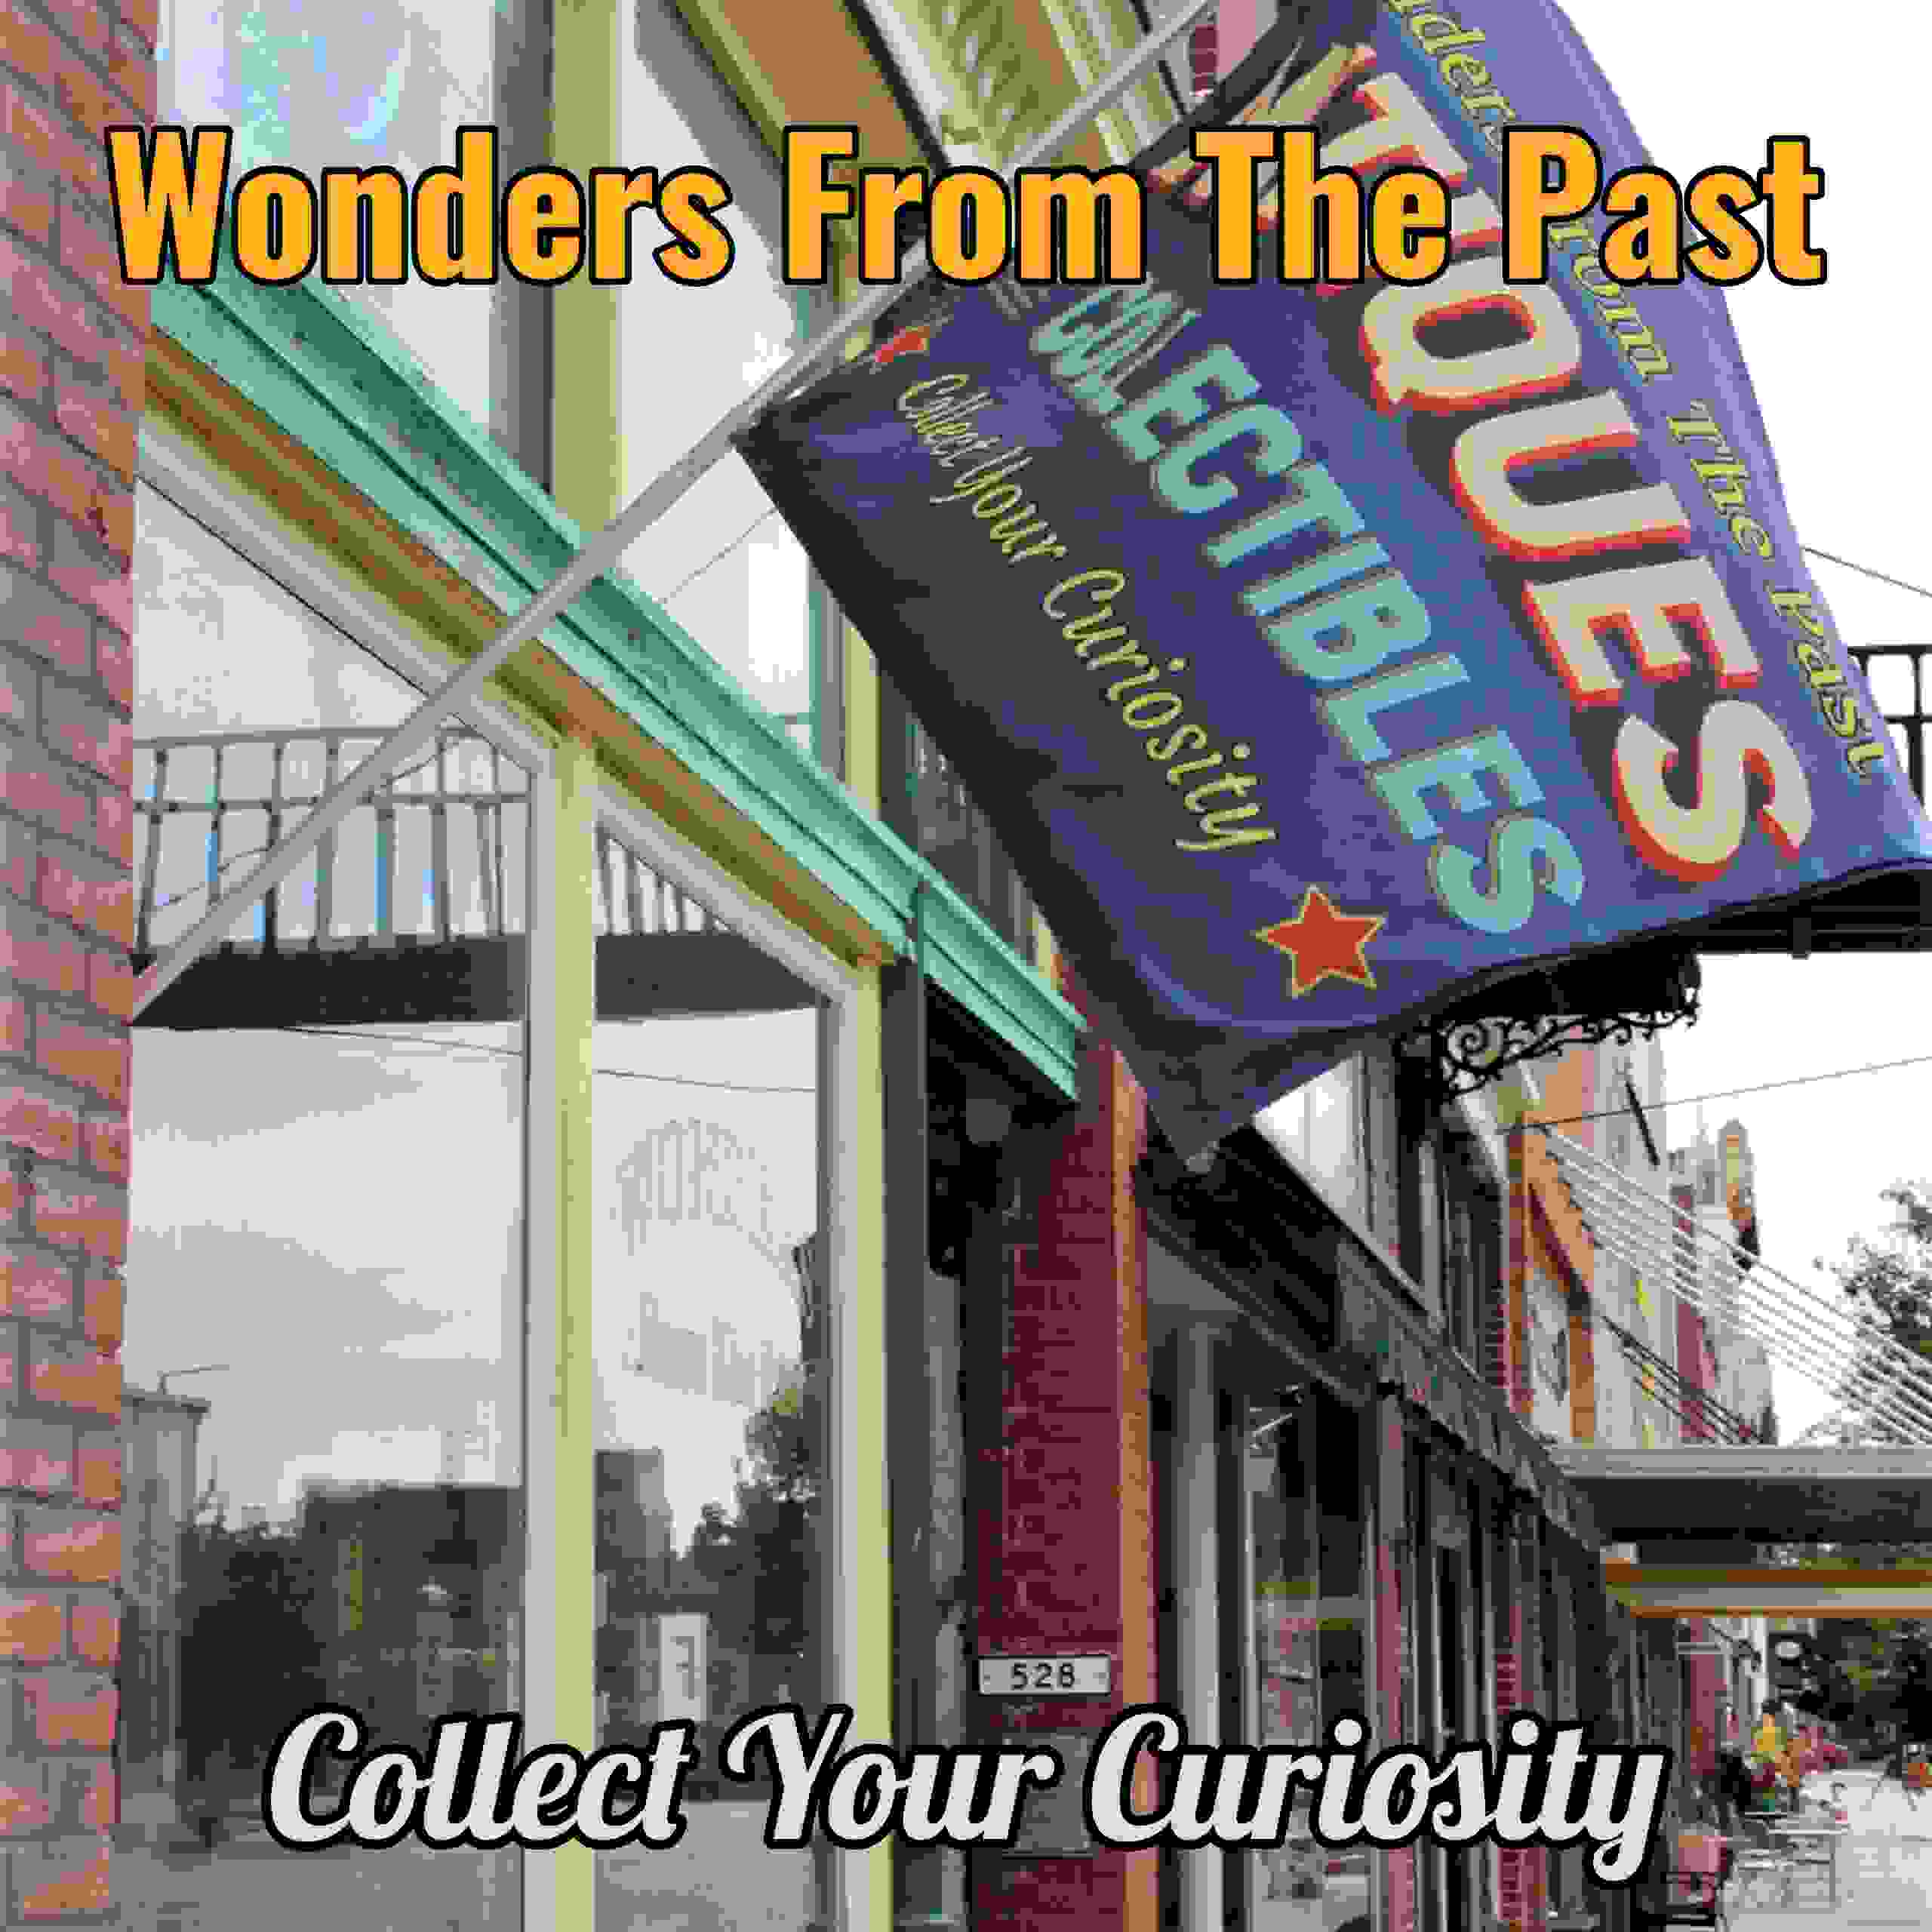 Visit our antique shop-Wonders from the past, to discover antiques & collectibles of all kinds